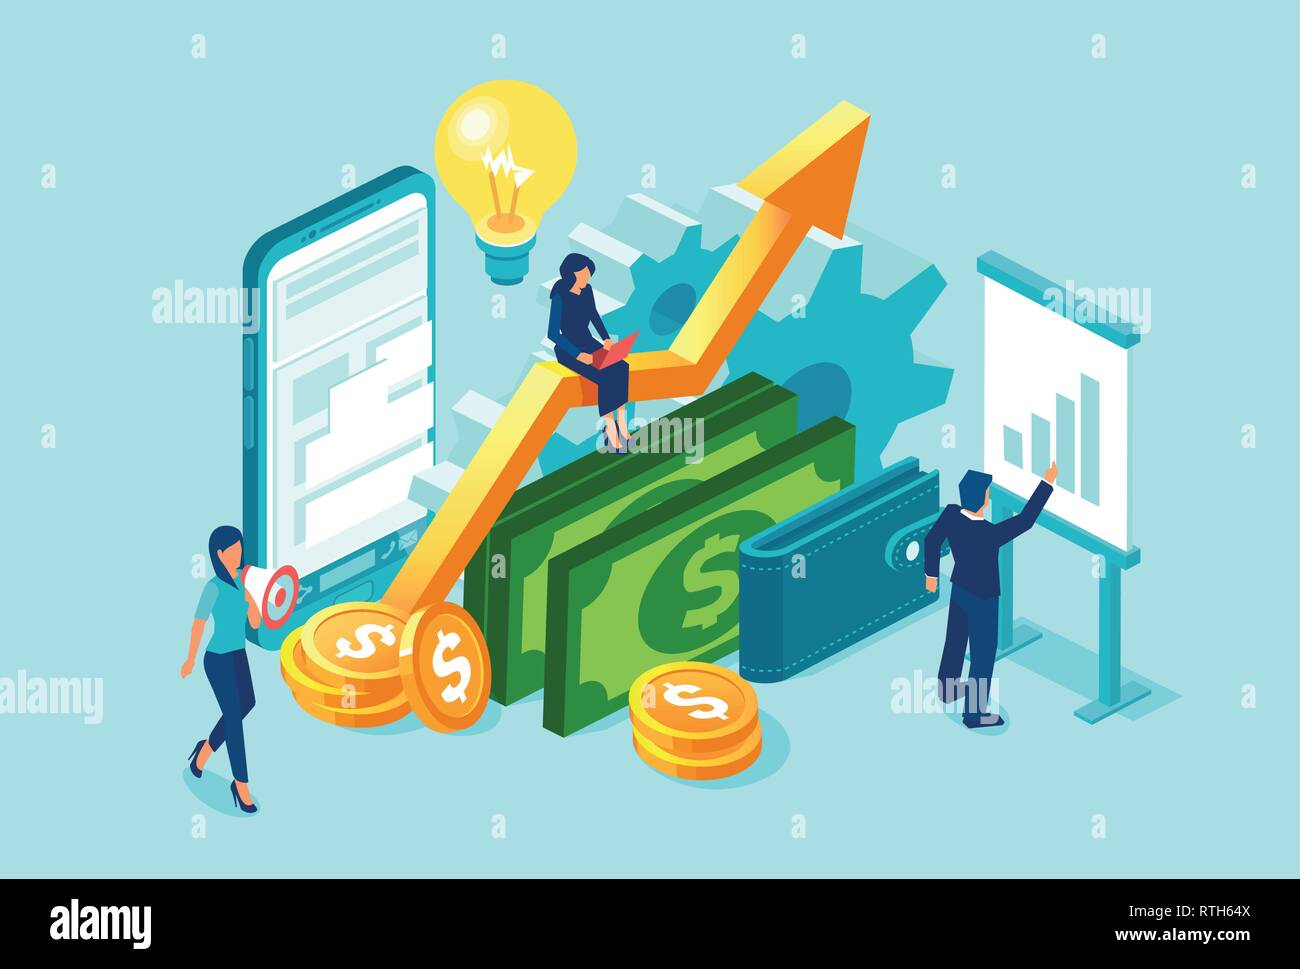 Vector business team working on financial data analysis and profitability using modern technology and marketing skills - Stock Image